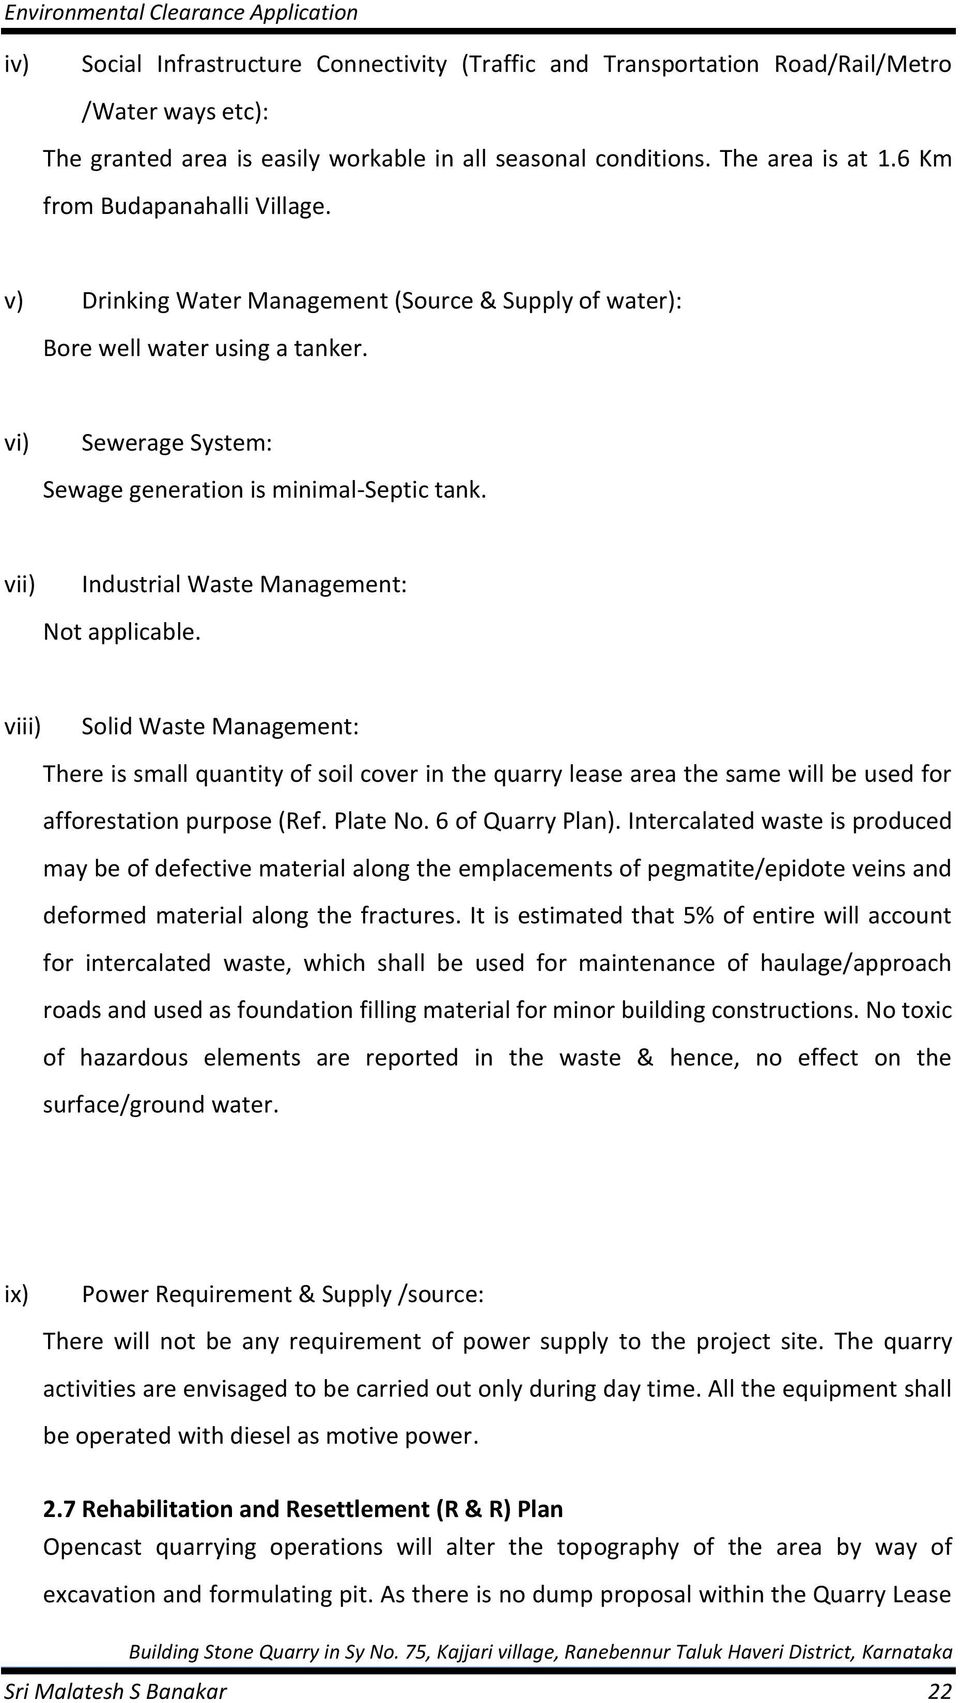 v Industrial Waste Management: Not applicable. vi Solid Waste Management: There is small quantity of soil cover in the quarry lease area the same will be used for afforestation purpose (Ref. Plate No.